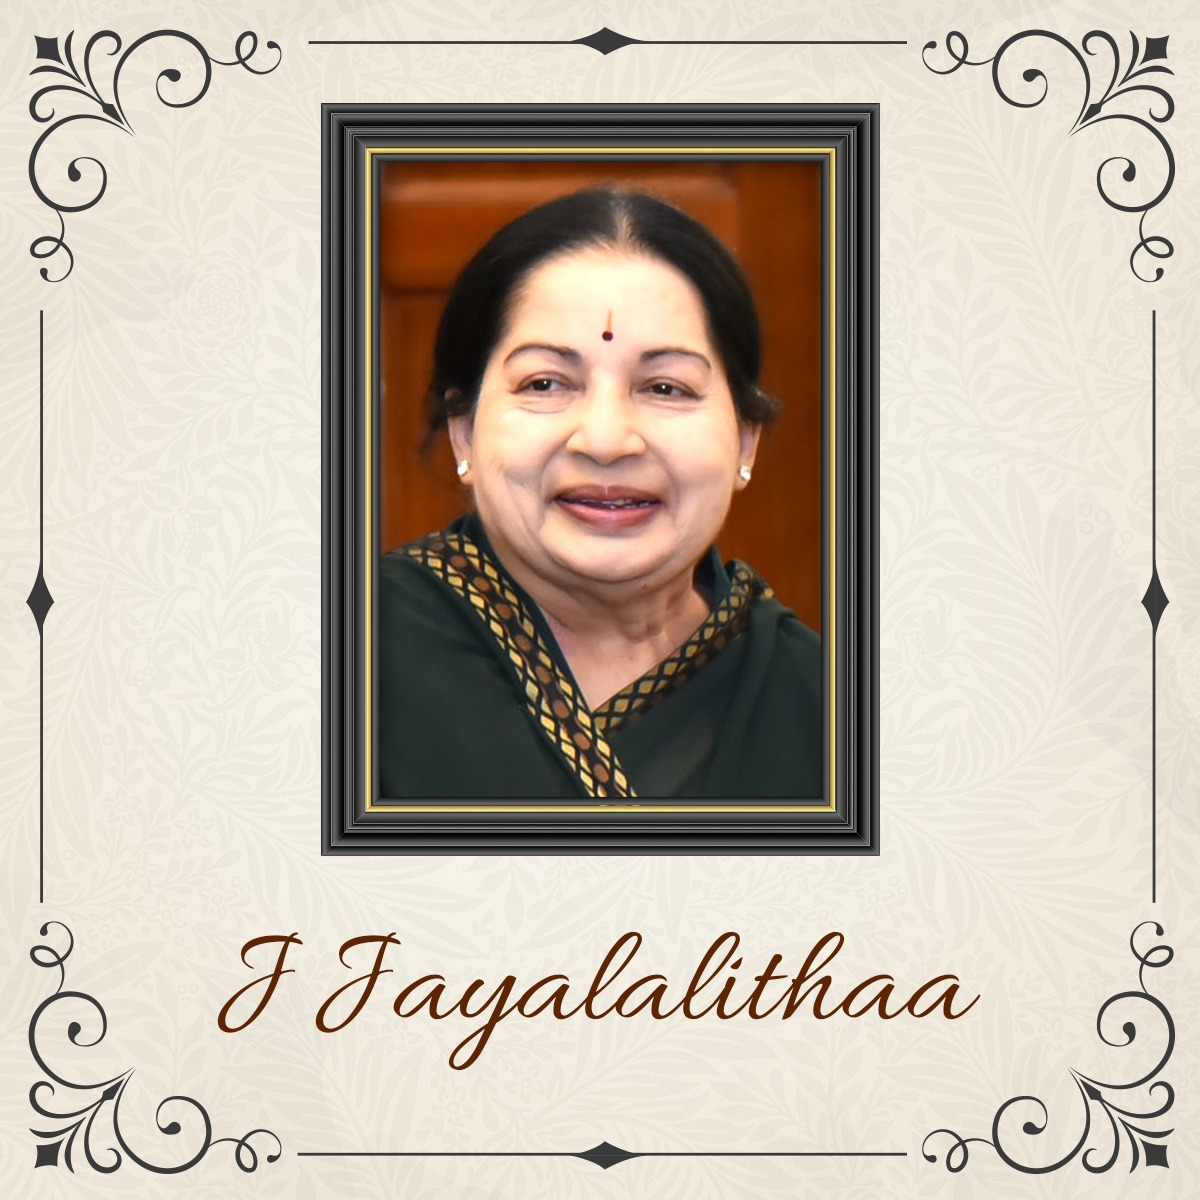 Remembering Puratchi Thalaivi, J Jayalalithaa on her birth anniversary. Her courage, compassion & contribution towards the people of Tamil Nadu will be remembered for generations. #Jayalalithaa